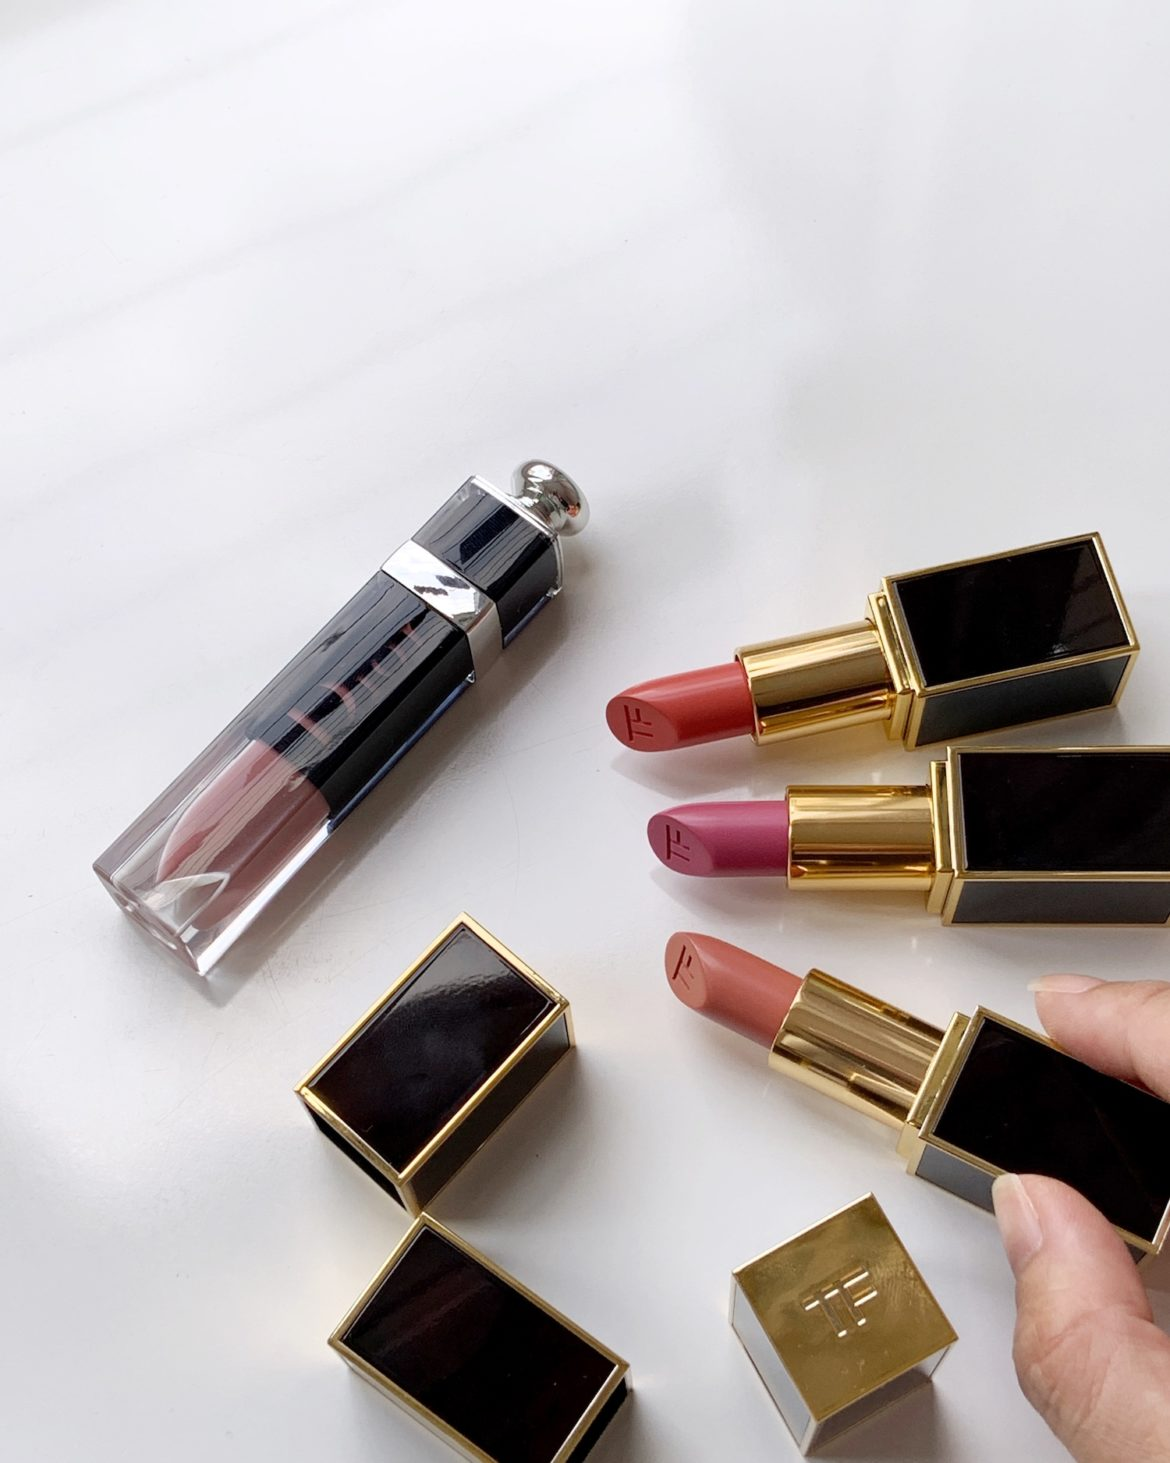 Tom Ford Lip Colours & Dior Addict Lacquer Plump Haul